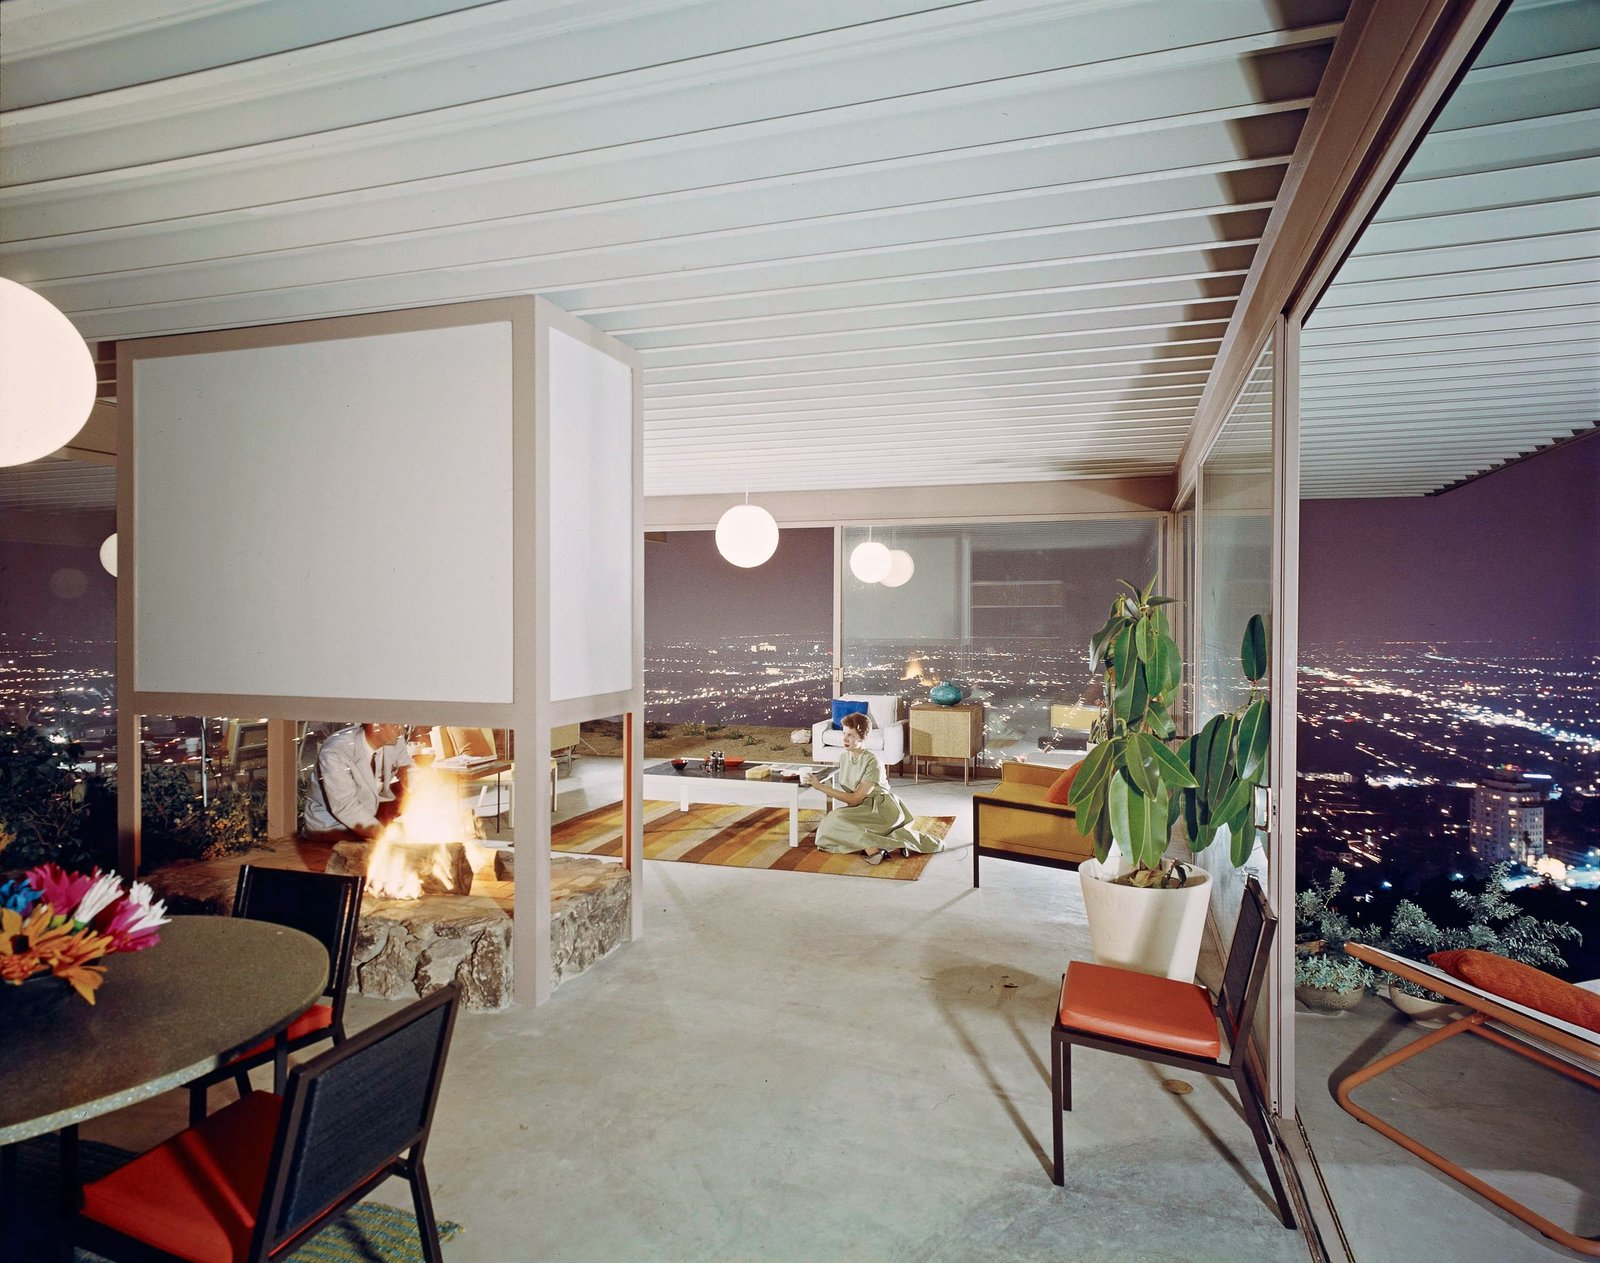 Stahl House, Los Angeles, CA - Pierre Koenig, 1957  Photo 4 of 11 in A New Book Celebrates Modernism With Futuristic Homes and Visionary Masterpieces